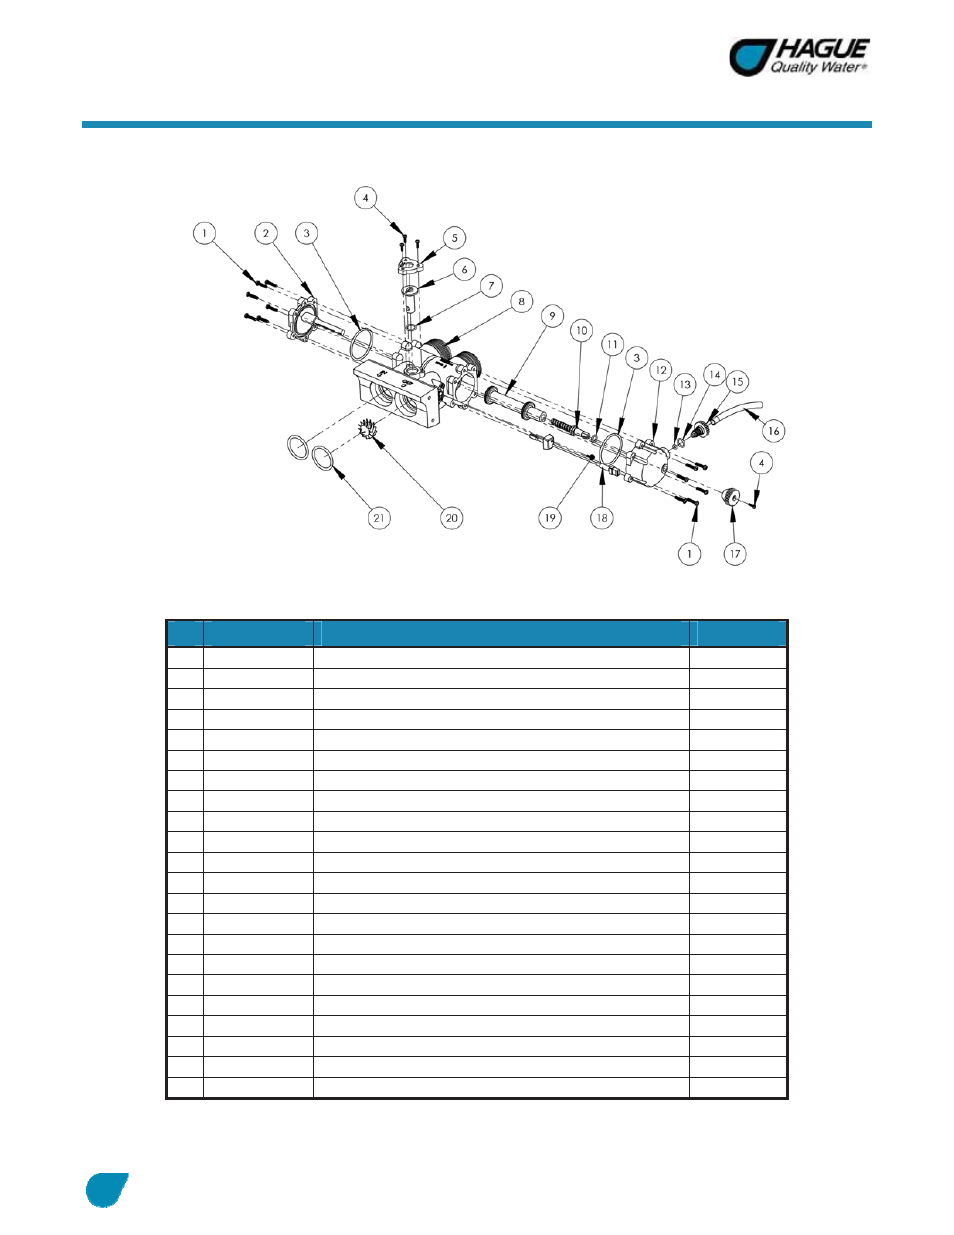 Assembly And Parts Cont Bypass Assembly Manual Guide